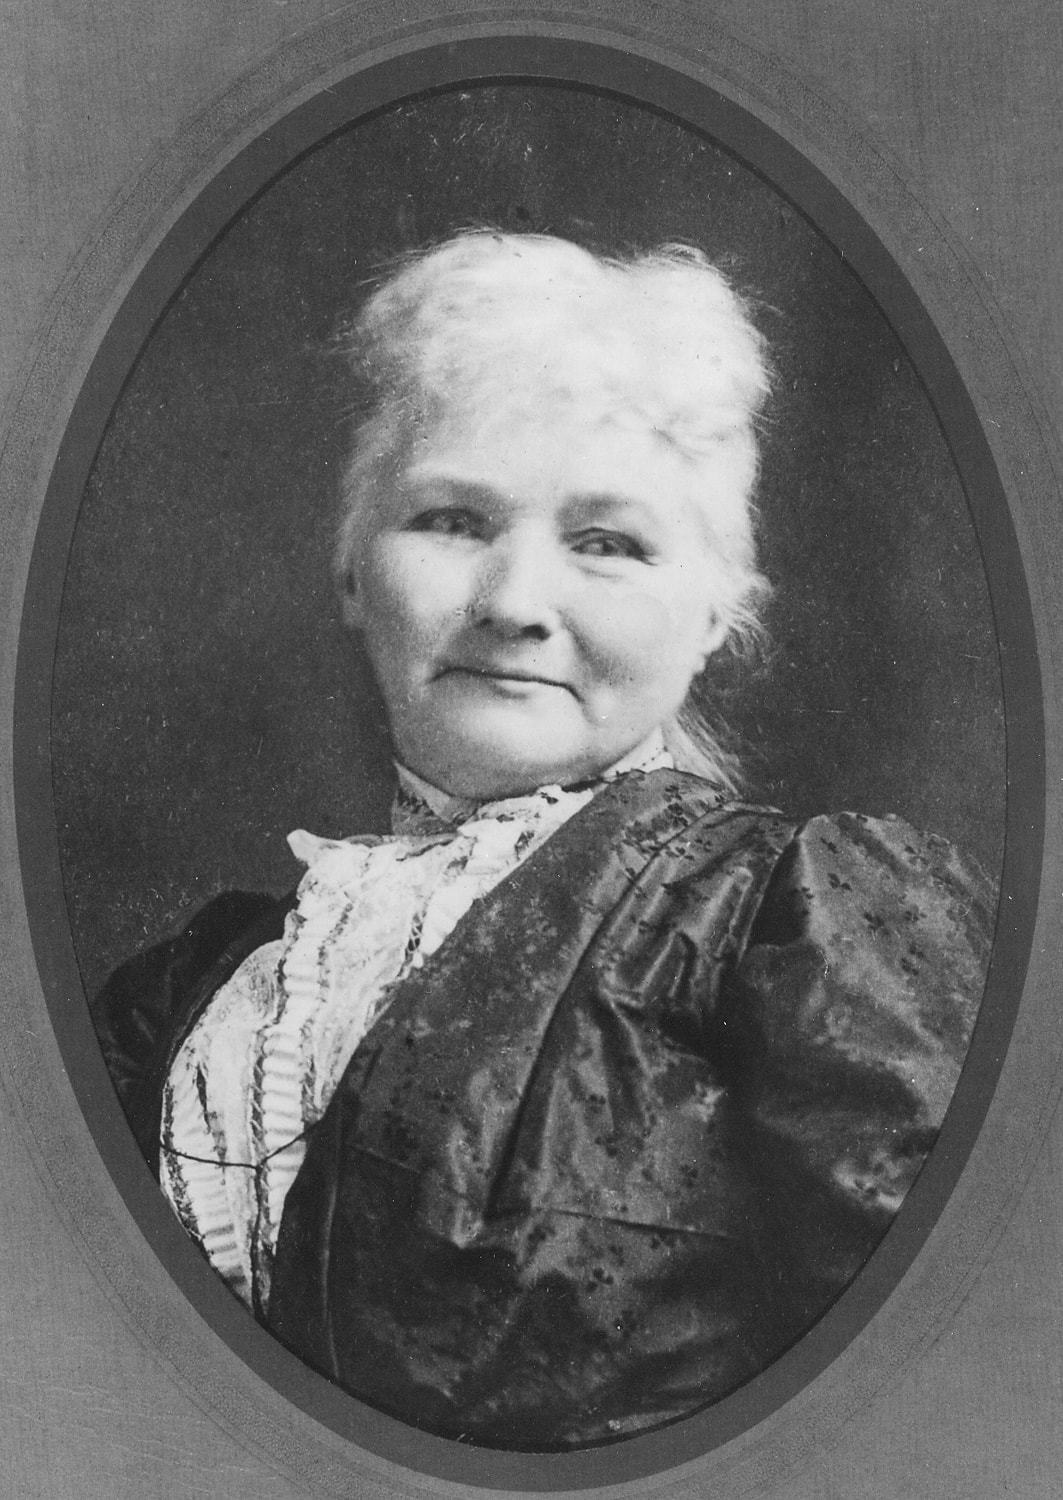 "Mother Jones ""width ="" 1063 ""height ="" 1500 ""srcset ="" https://www.mybuckhannon.com/wp-content/uploads/2019/02/mother_jones.jpg 1063w, https://www.mybuckhannon.com /wp-content/uploads/2019/02/mother_jones-213x300.jpg 213w, https://www.mybuckhannon.com/wp-content/uploads/2019/02/mother_jones-768x1084.jpg 768w, https: // www .mybuckhannon.com / wp-content / uploads / 2019/02 / mother_jones-726x1024.jpg 726w, https://www.mybuckhannon.com/wp-content/uploads/2019/02/mother_jones-696x982.jpg 696w, https : //www.mybuckhannon.com/wp-content/uploads/2019/02/mother_jones-298x420.jpg 298w, https://www.mybuckhannon.com/wp-content/uploads/2019/02/mother_jones-600x847. jpg 600w ""sizes ="" (max-width: 1063px) 100vw, 1063px"